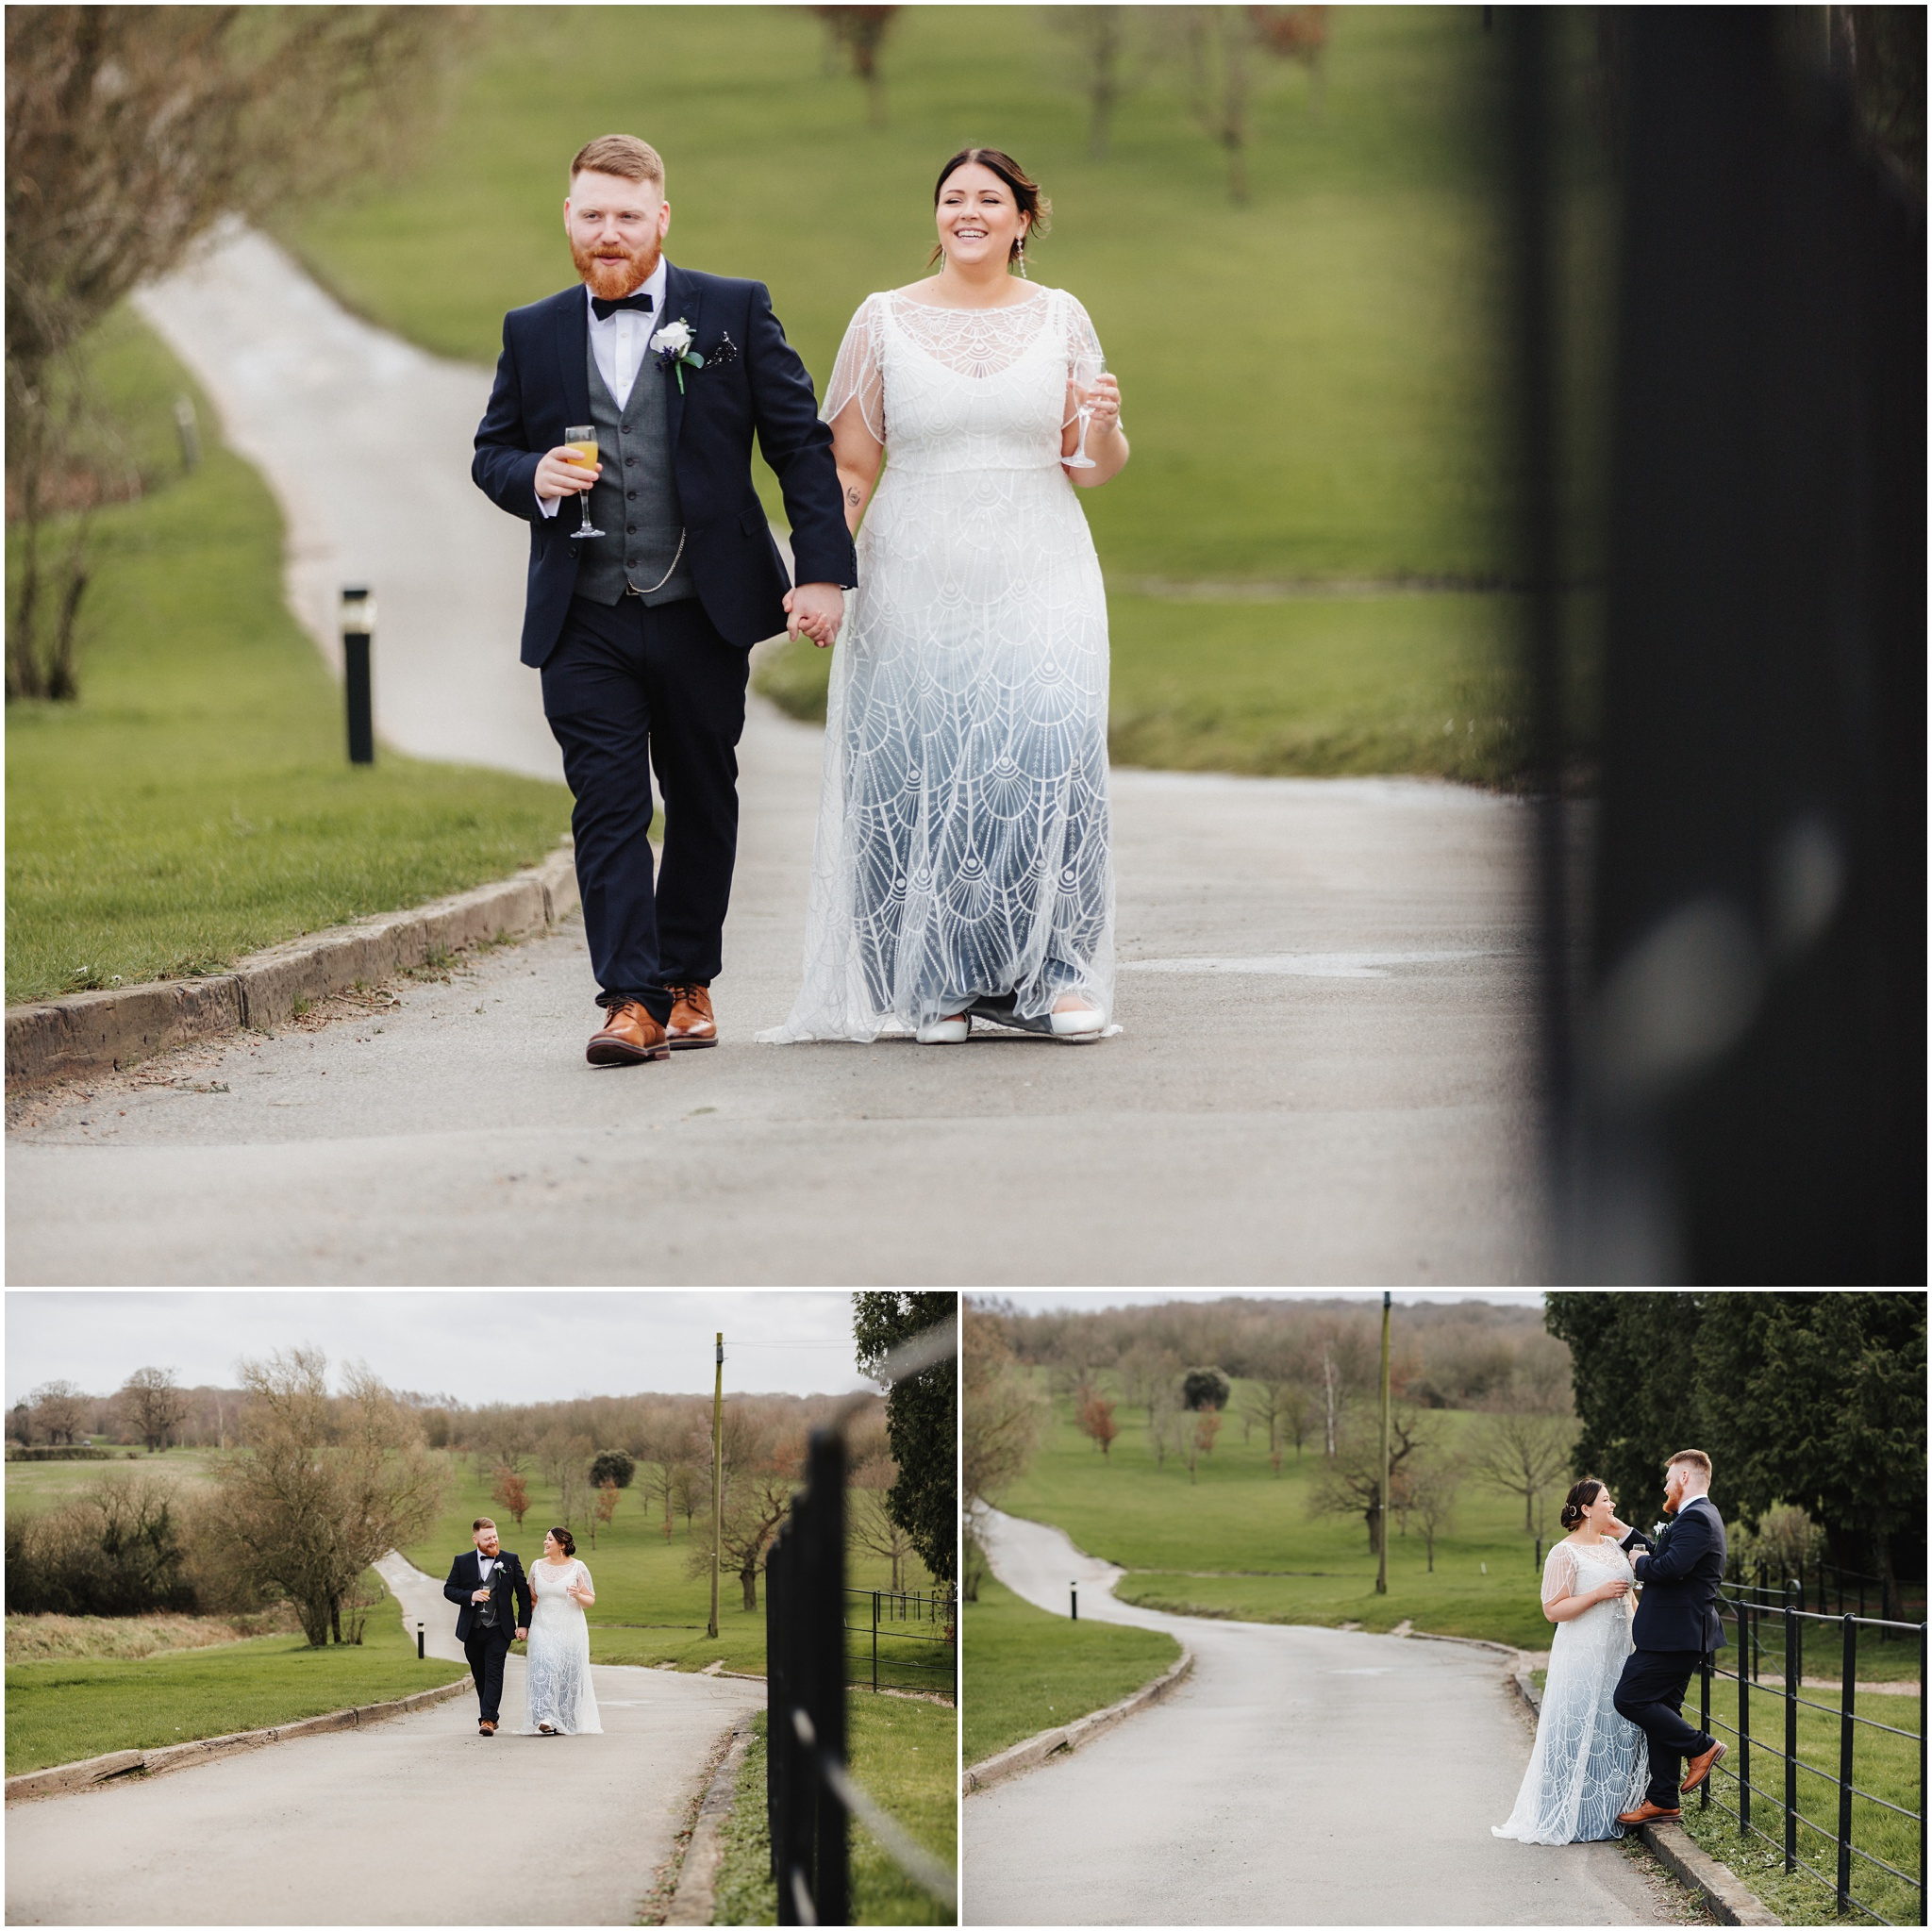 The bride and groom walk along the path and joke while having a drink